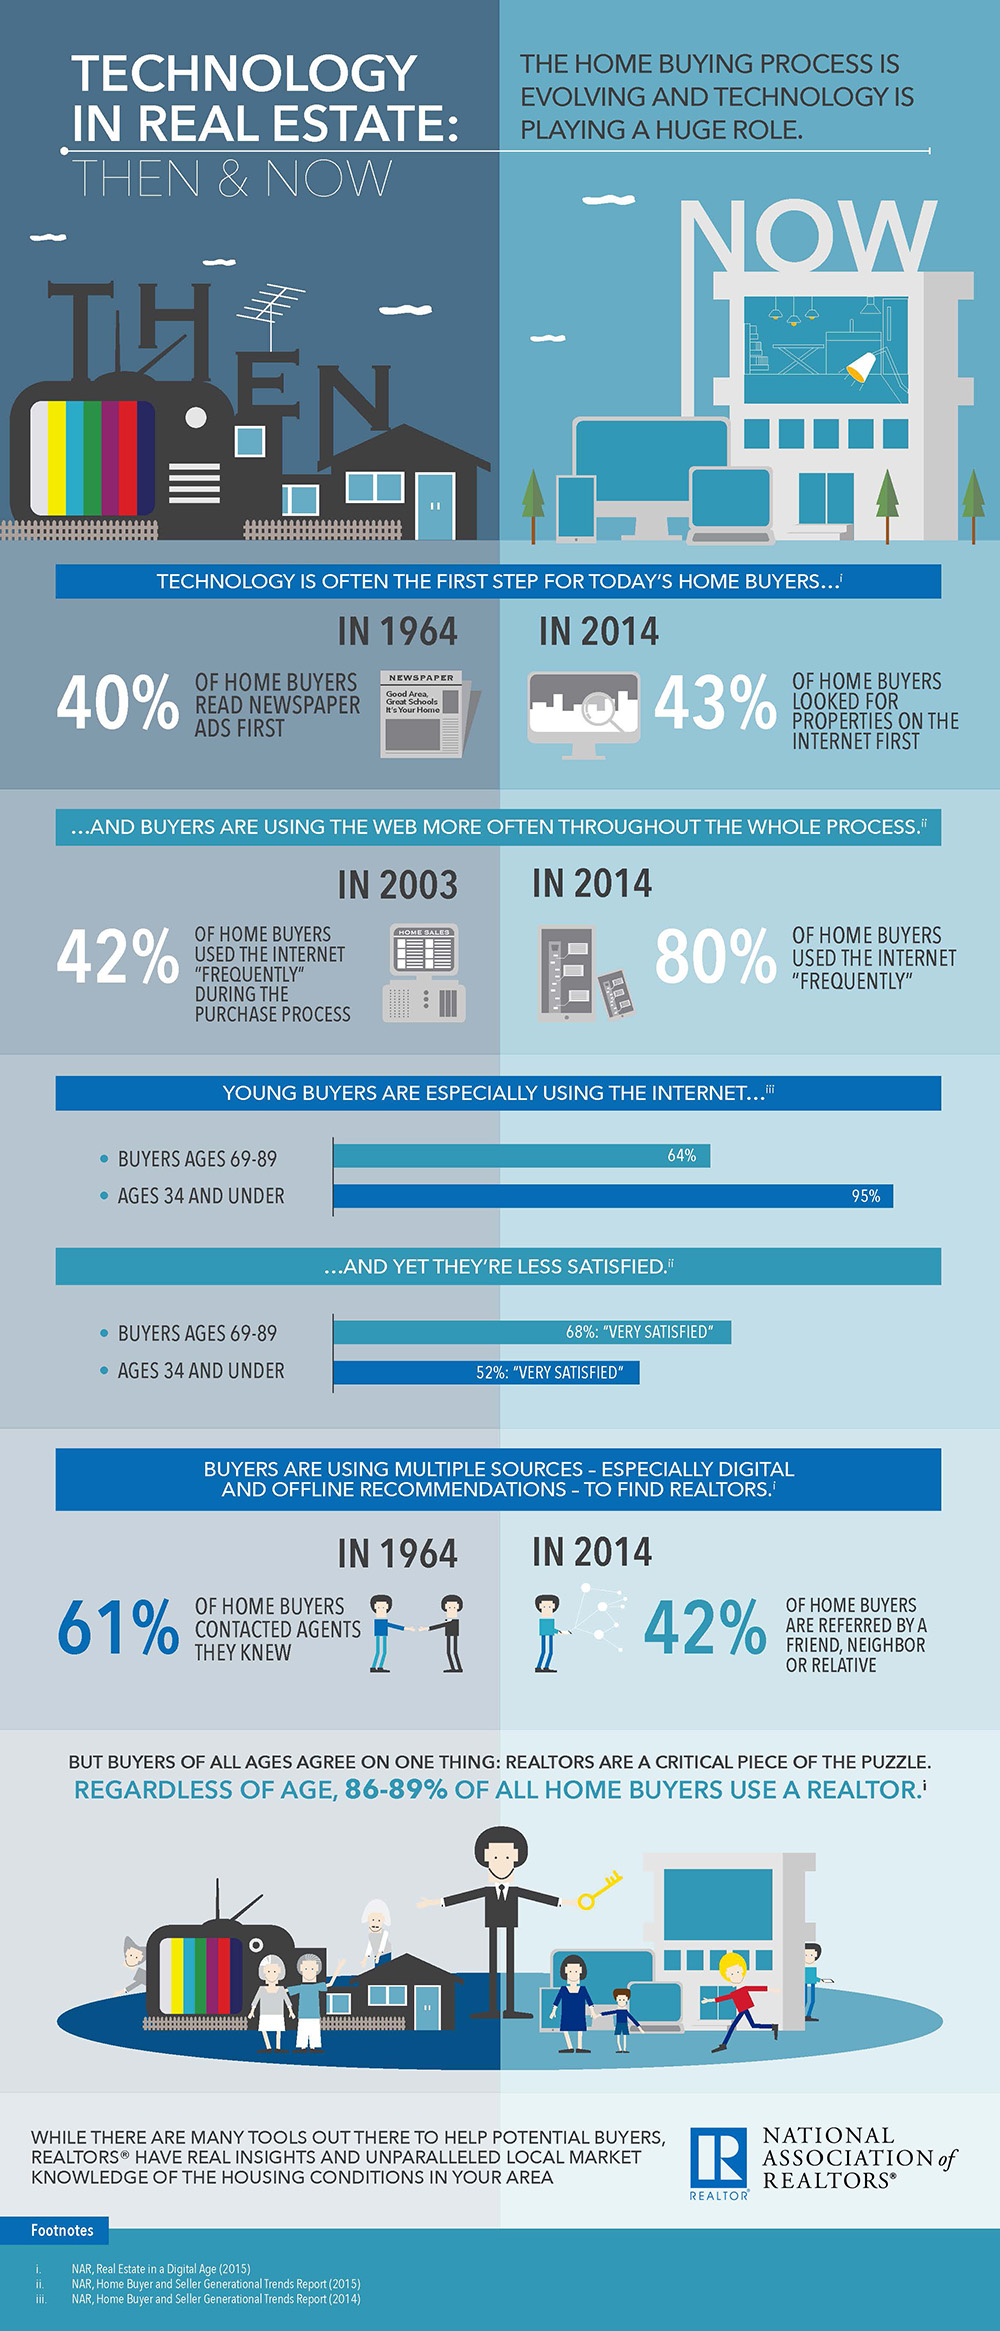 Technology in Real Estate: Then and Now | www.nar.realtor